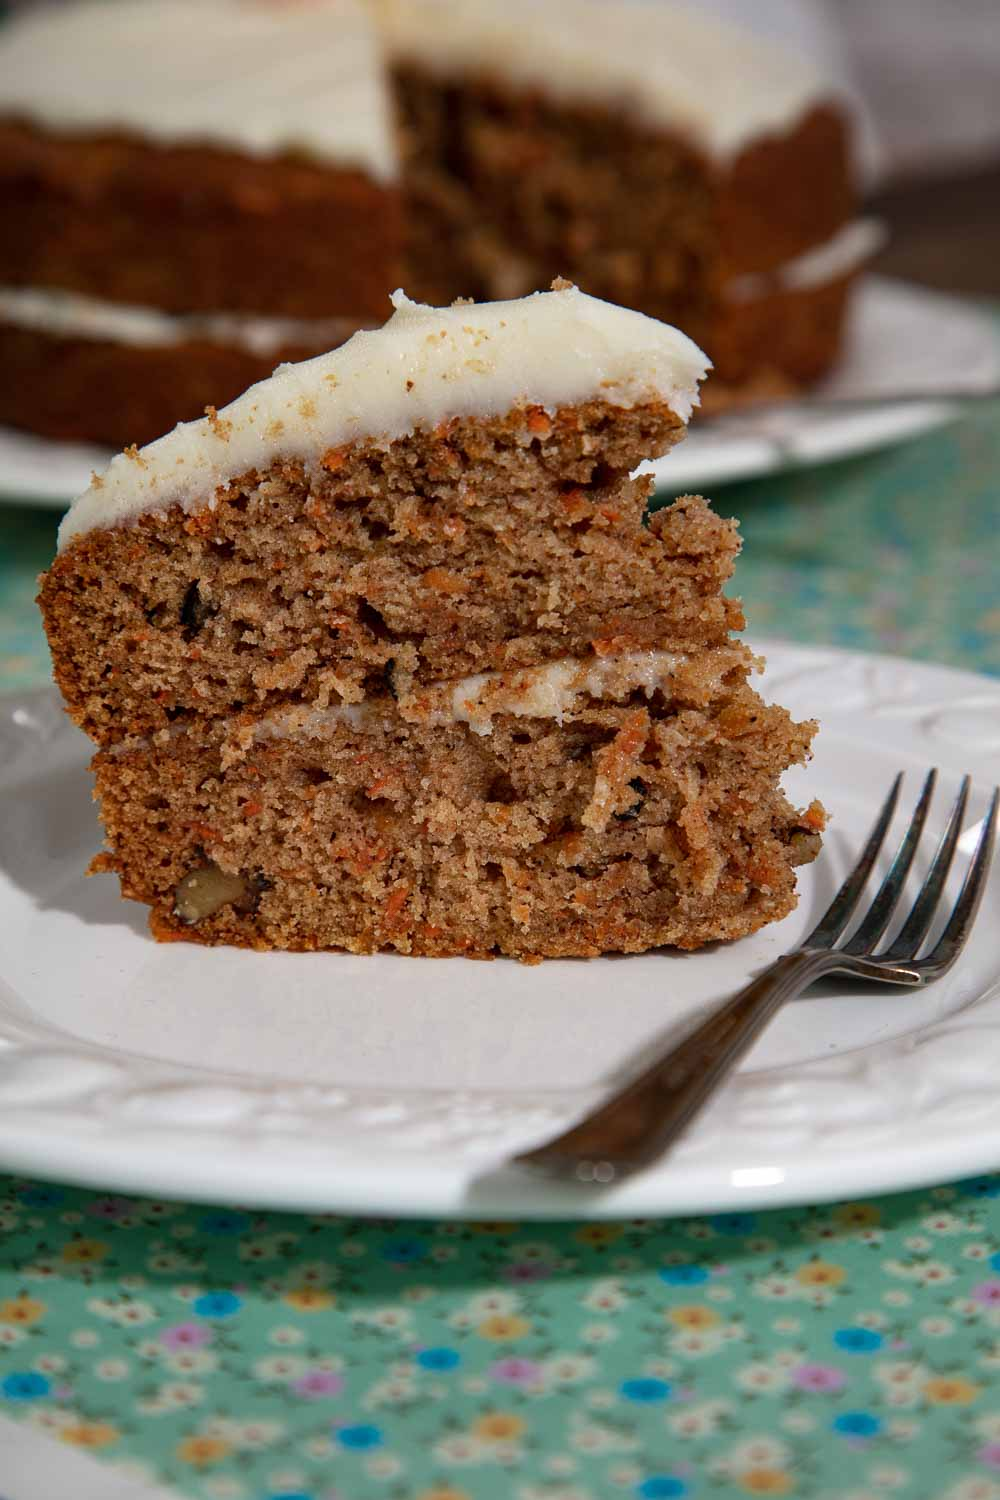 A slice of vegan carrot cake on a white plate with a silver cake fork.